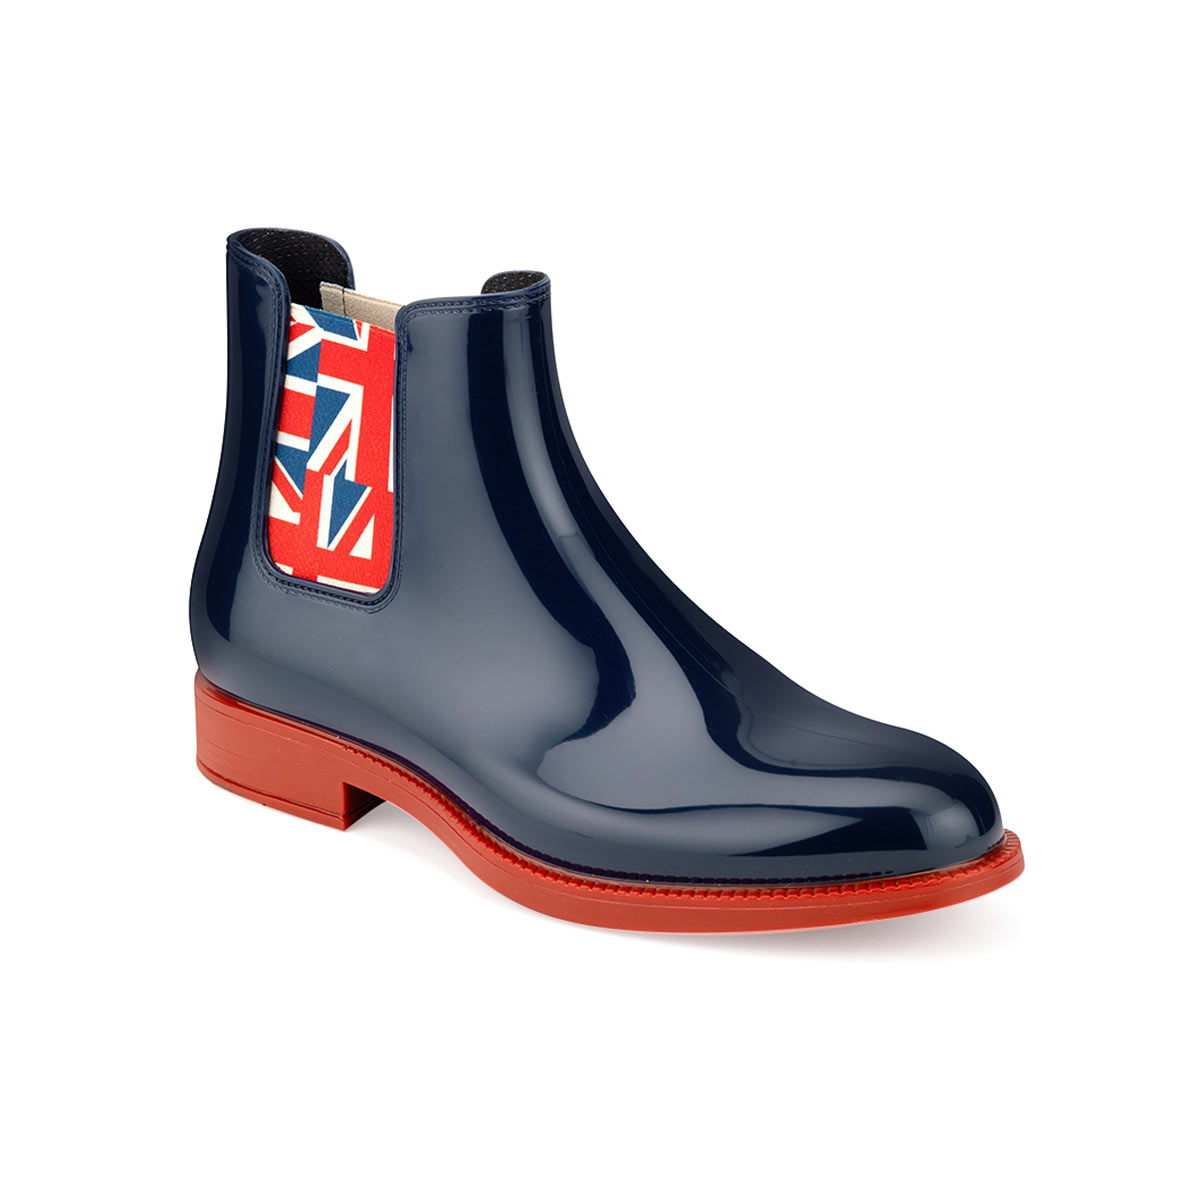 Elastic bands and elasticized linings Elastic band with English flag drawing on chelsea boot for men with blue pvc vamp and red outsole